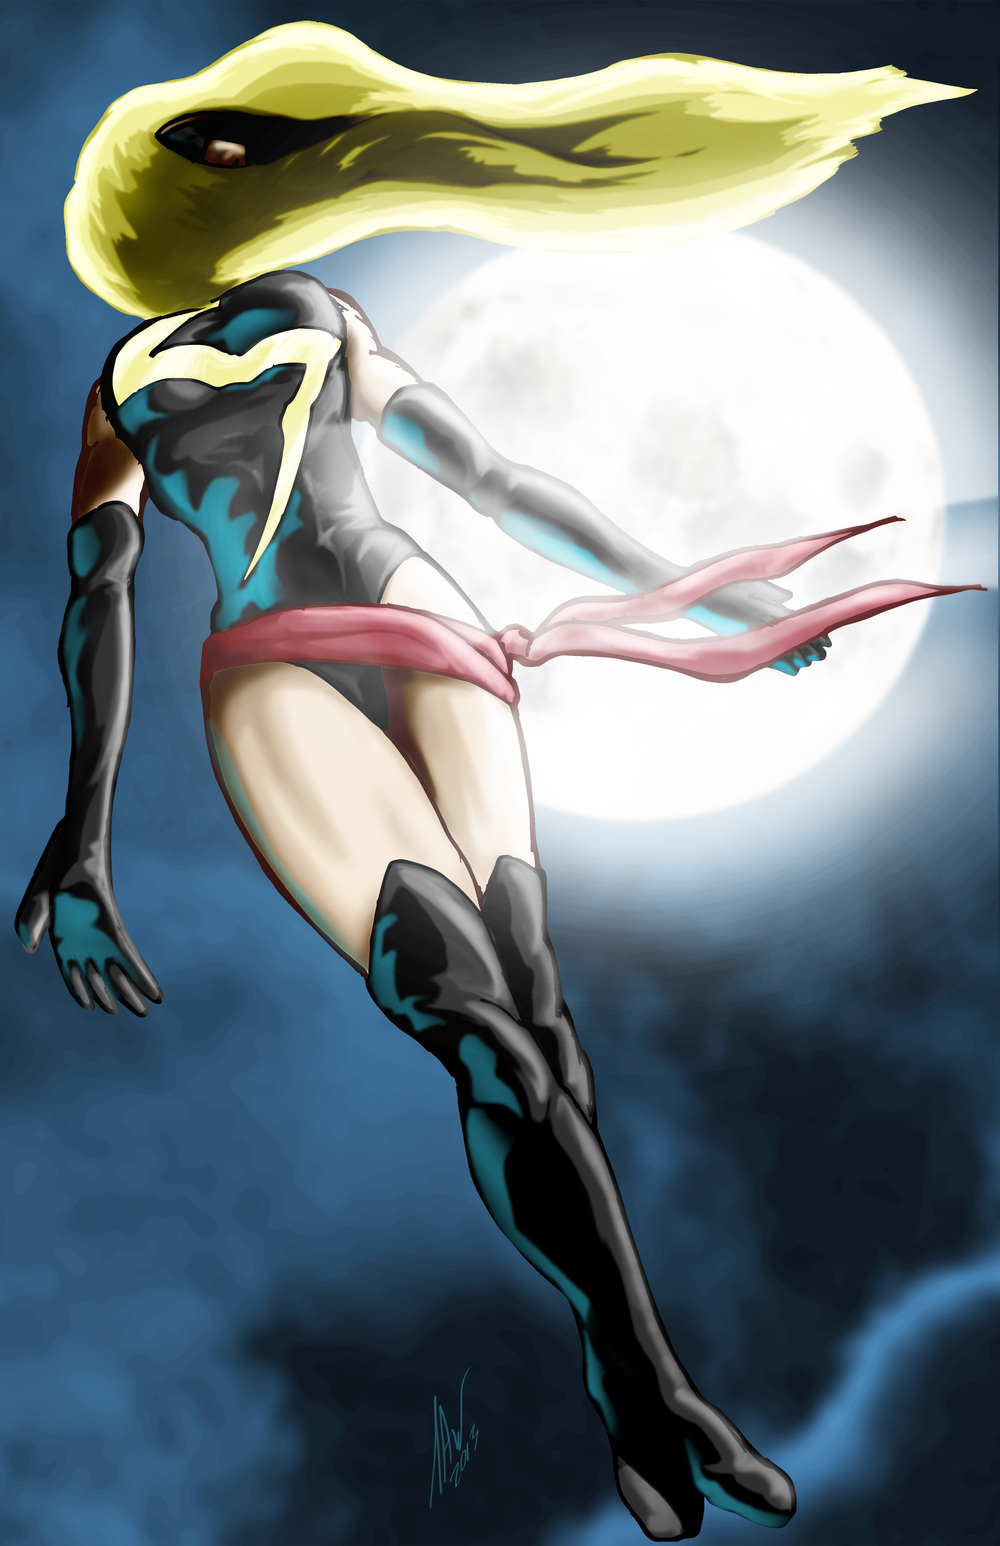 Ms Marvel-Marvel by Moonlight 11x17.jpg